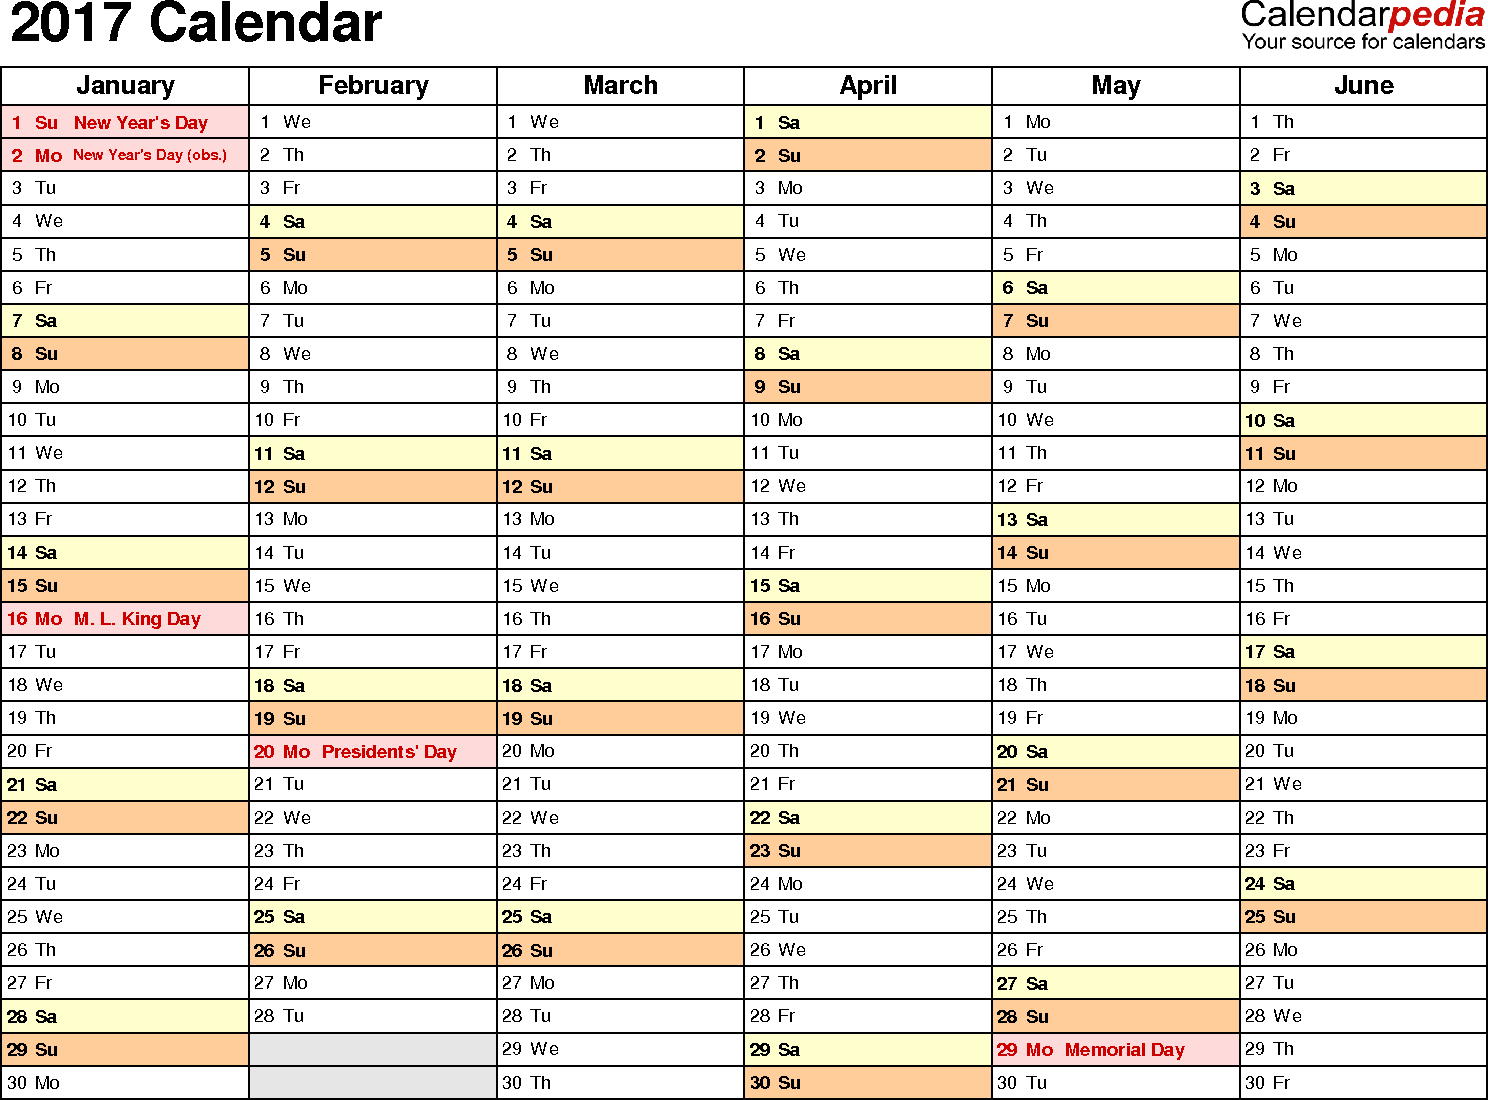 Ediblewildsus  Remarkable  Calendar  Download  Free Printable Excel Templates Xls With Exquisite Template   Calendar For Excel Months Horizontally  Pages Landscape Orientation With Easy On The Eye Apple Version Of Excel Also How To Combine Worksheets In Excel In Addition How To Paste In Excel And Word And Excel As Well As How To Subtract One Cell From Another In Excel Additionally Delete Blank Cells In Excel From Calendarpediacom With Ediblewildsus  Exquisite  Calendar  Download  Free Printable Excel Templates Xls With Easy On The Eye Template   Calendar For Excel Months Horizontally  Pages Landscape Orientation And Remarkable Apple Version Of Excel Also How To Combine Worksheets In Excel In Addition How To Paste In Excel From Calendarpediacom